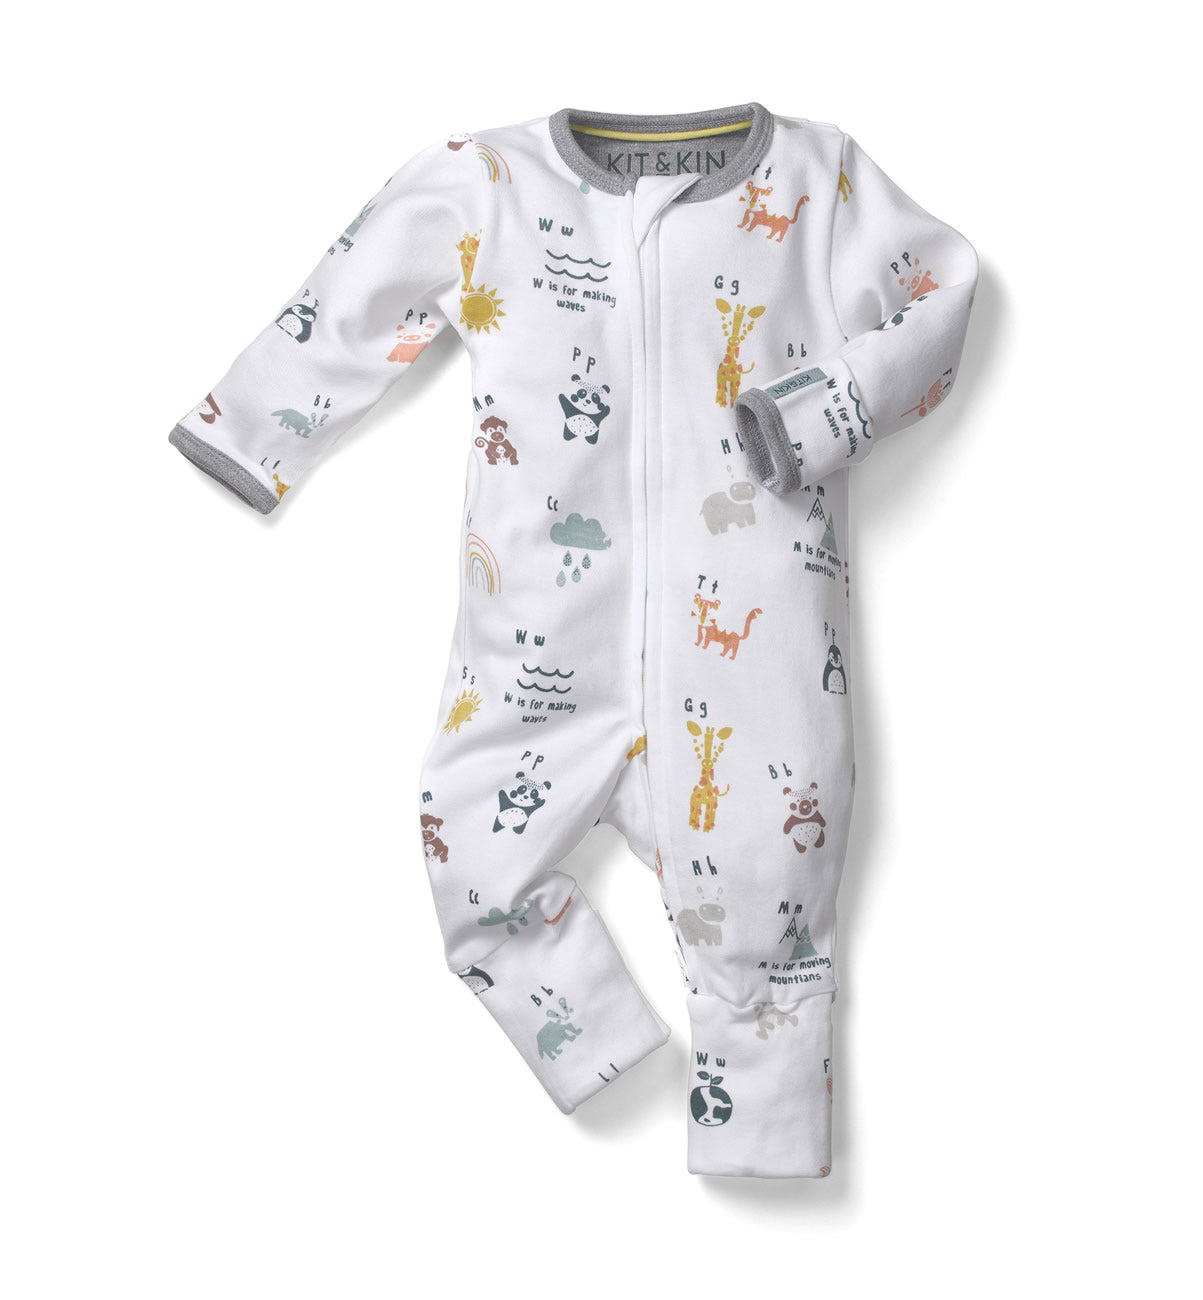 All-in-one durable onesie 0 to 3 months